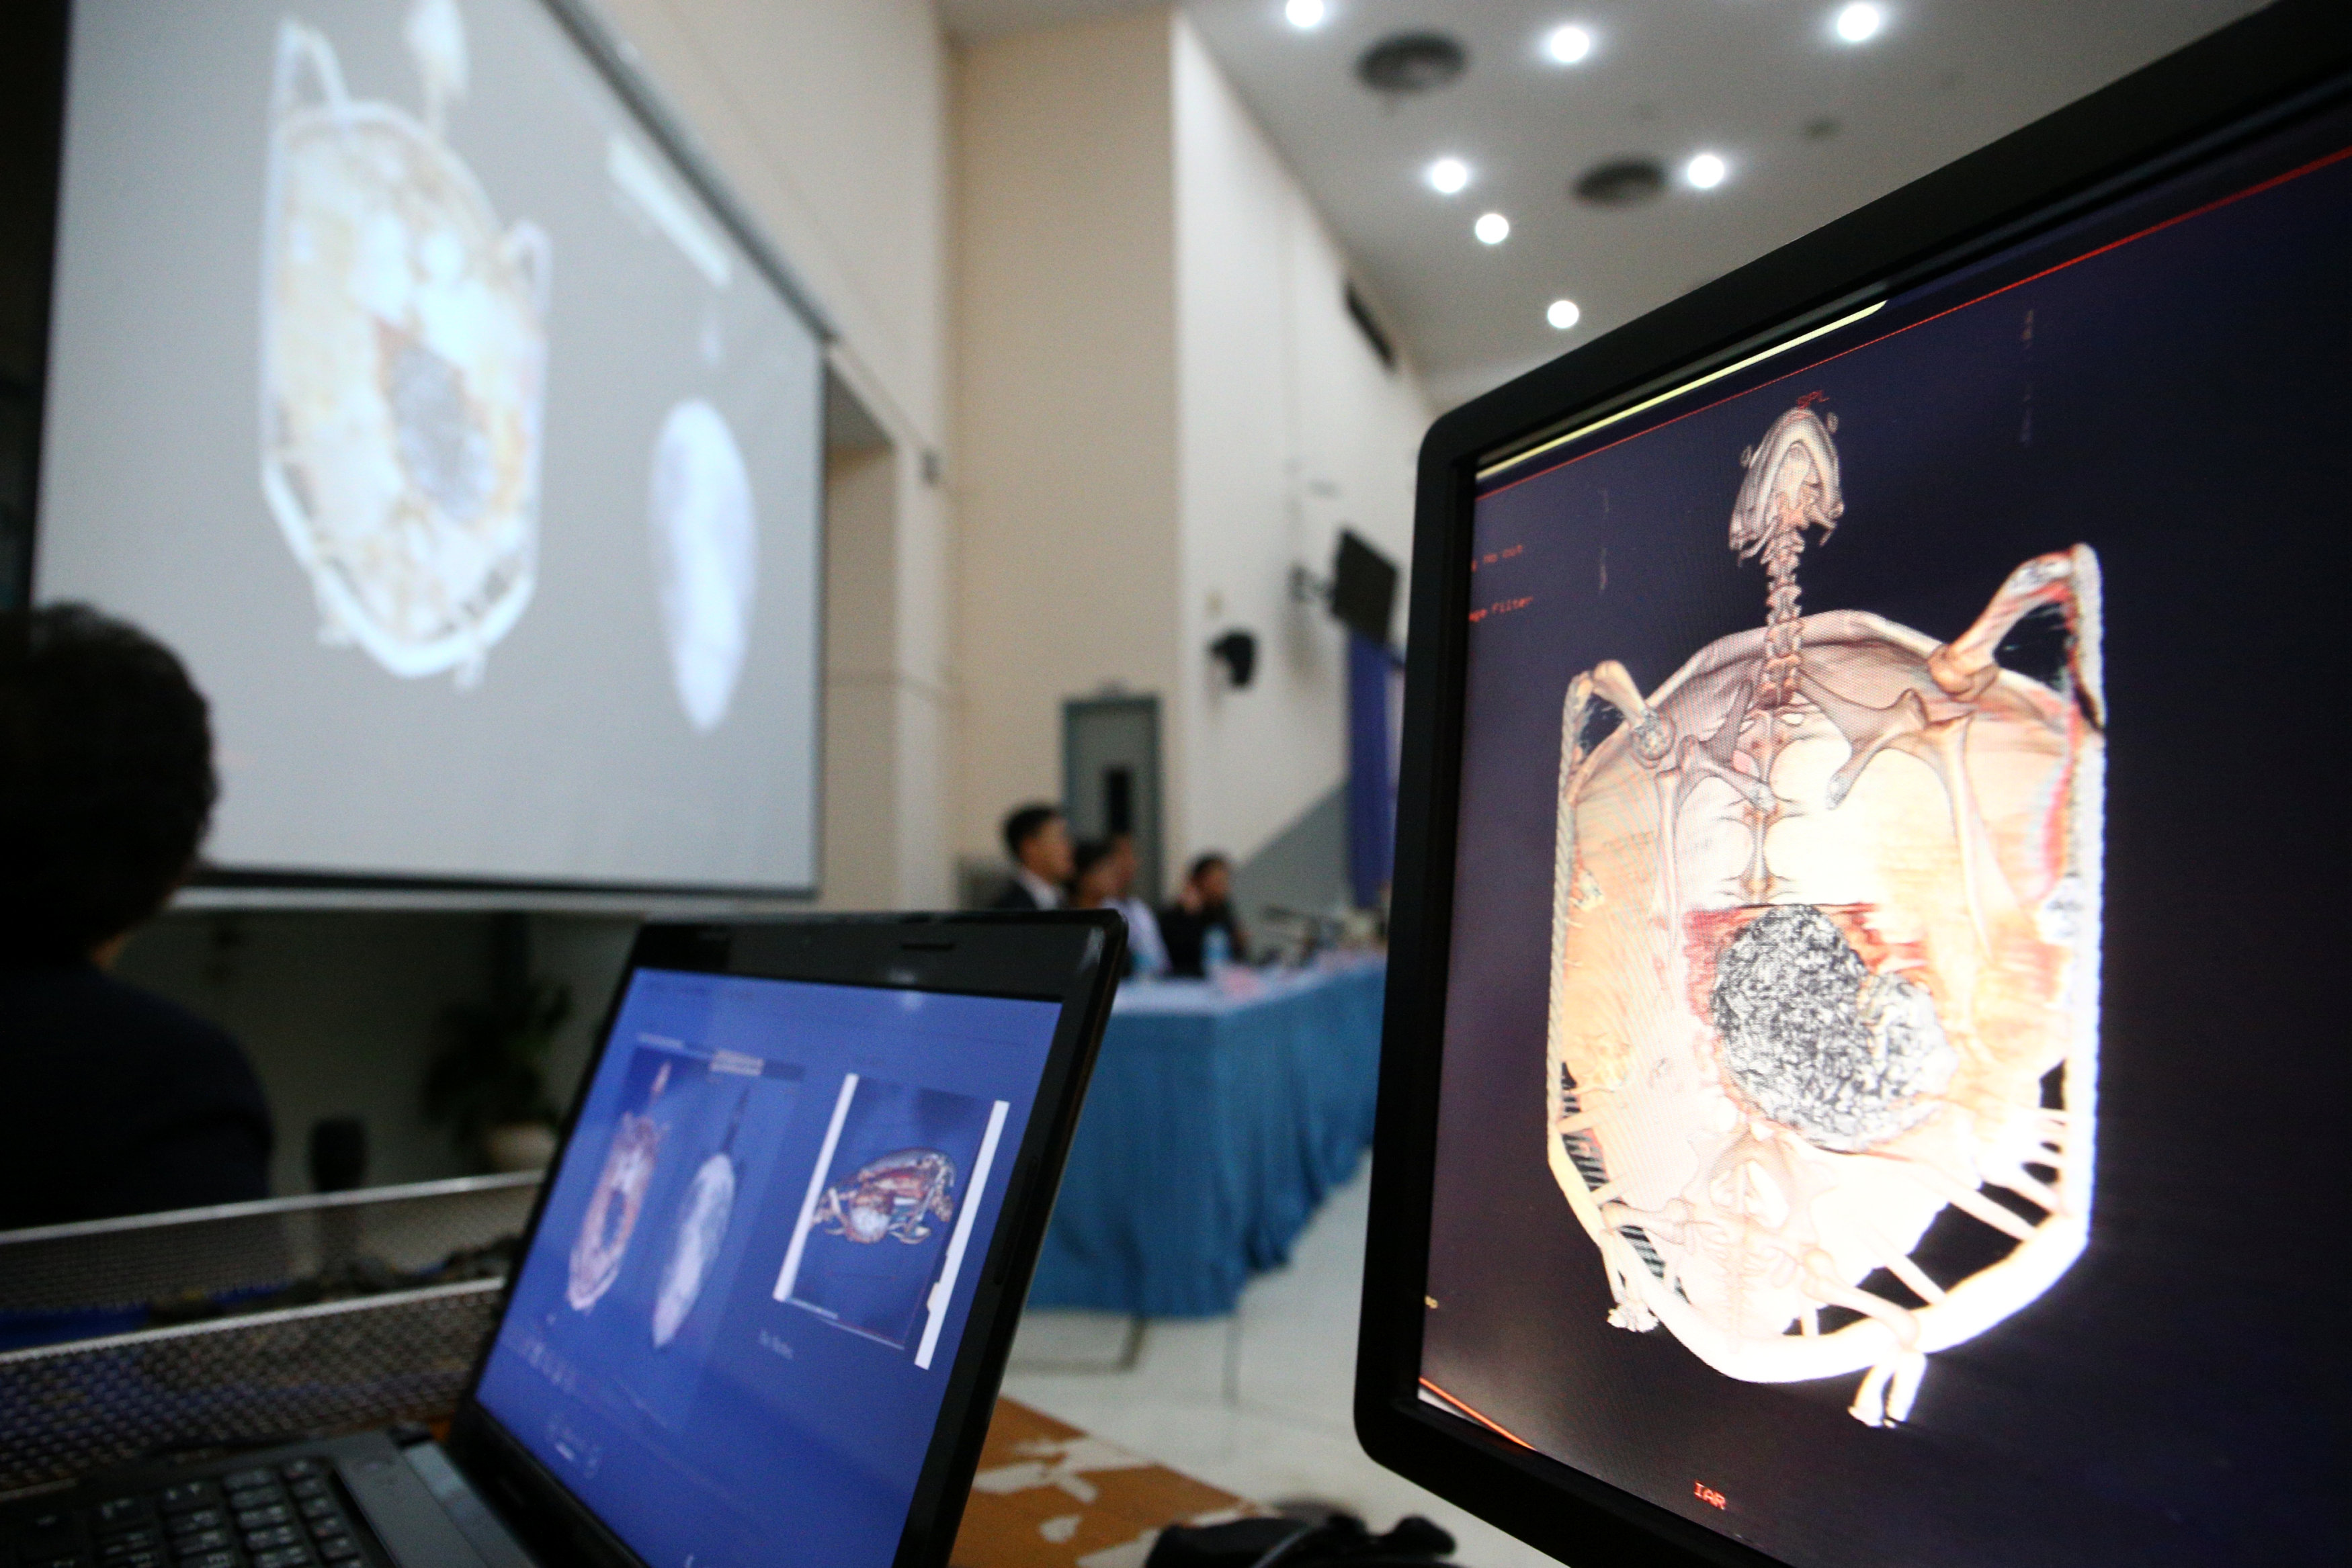 Screens show a CT scan of Omsin, a 25 year old femal green sea turtle, during a news conference at the Faculty of Veterinary Science, Chulalongkorn University in Bangkok, Thailand March 6, 2017. REUTERS/Athit Perawongmetha